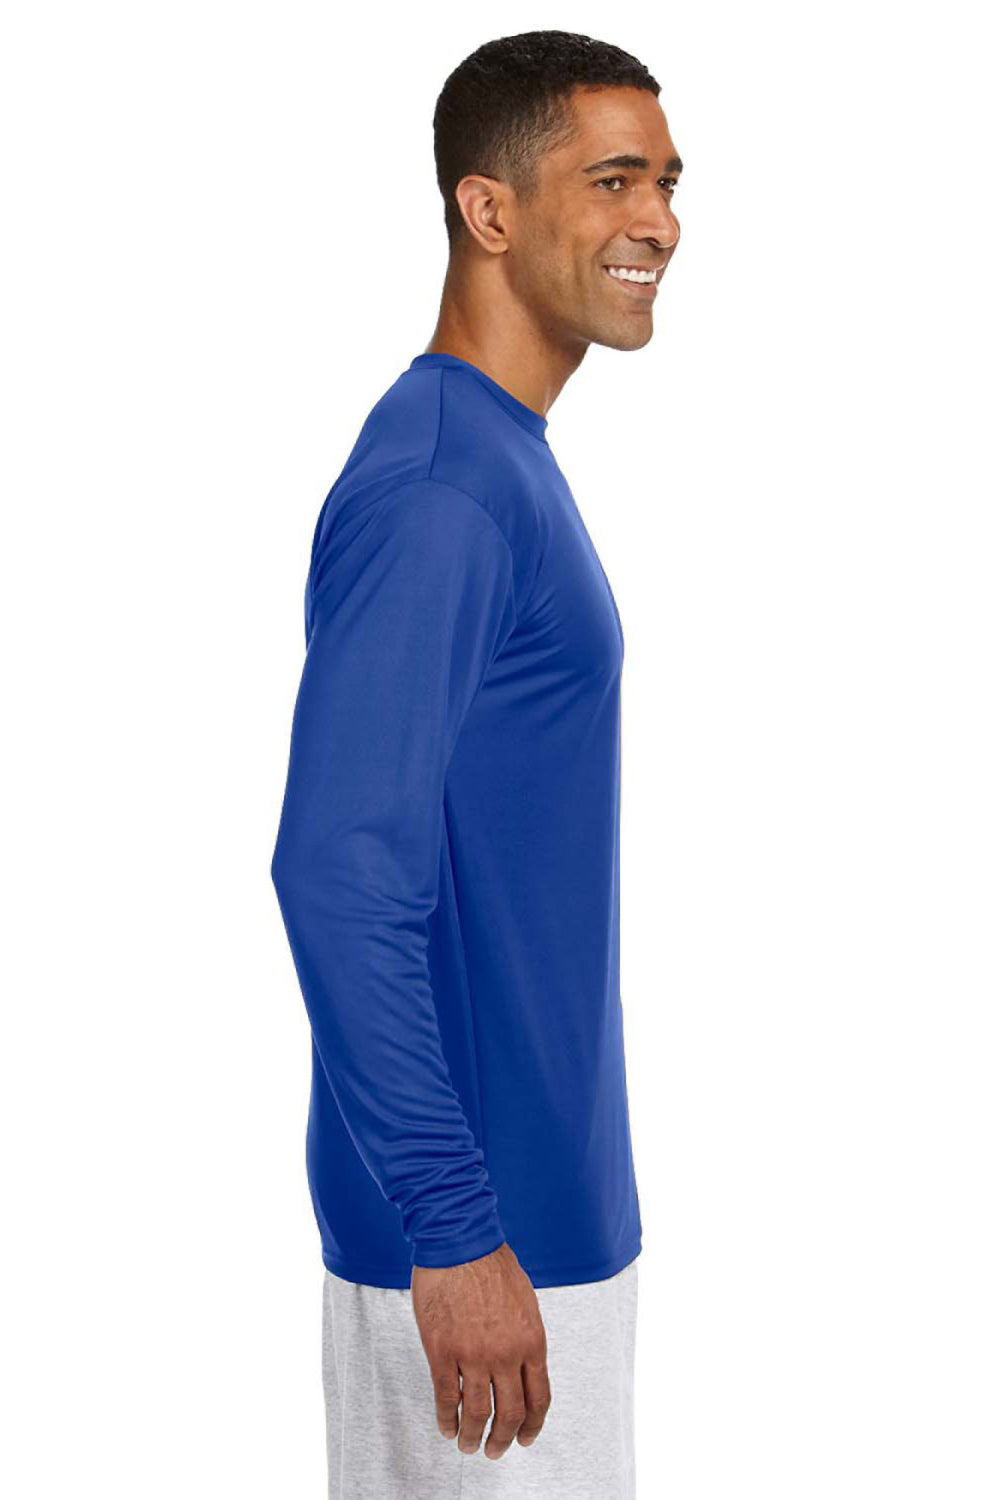 A4 N3165 Mens Cooling Performance Moisture Wicking Long Sleeve Crewneck T-Shirt Royal Blue Side